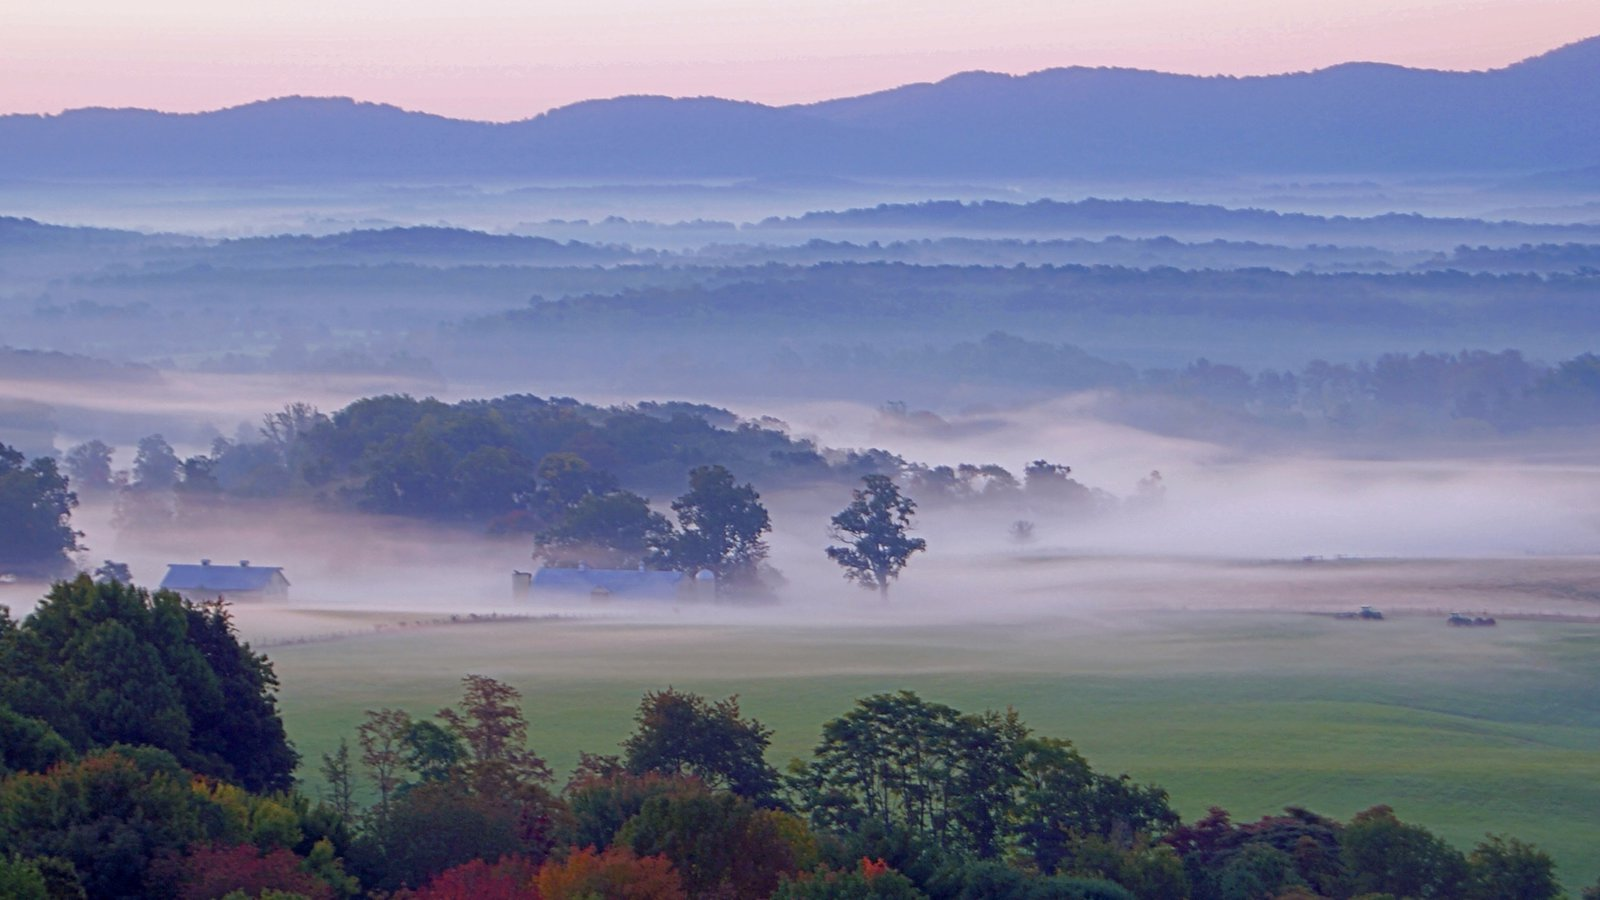 Virginia featuring mountains, tranquil scenes and mist or fog